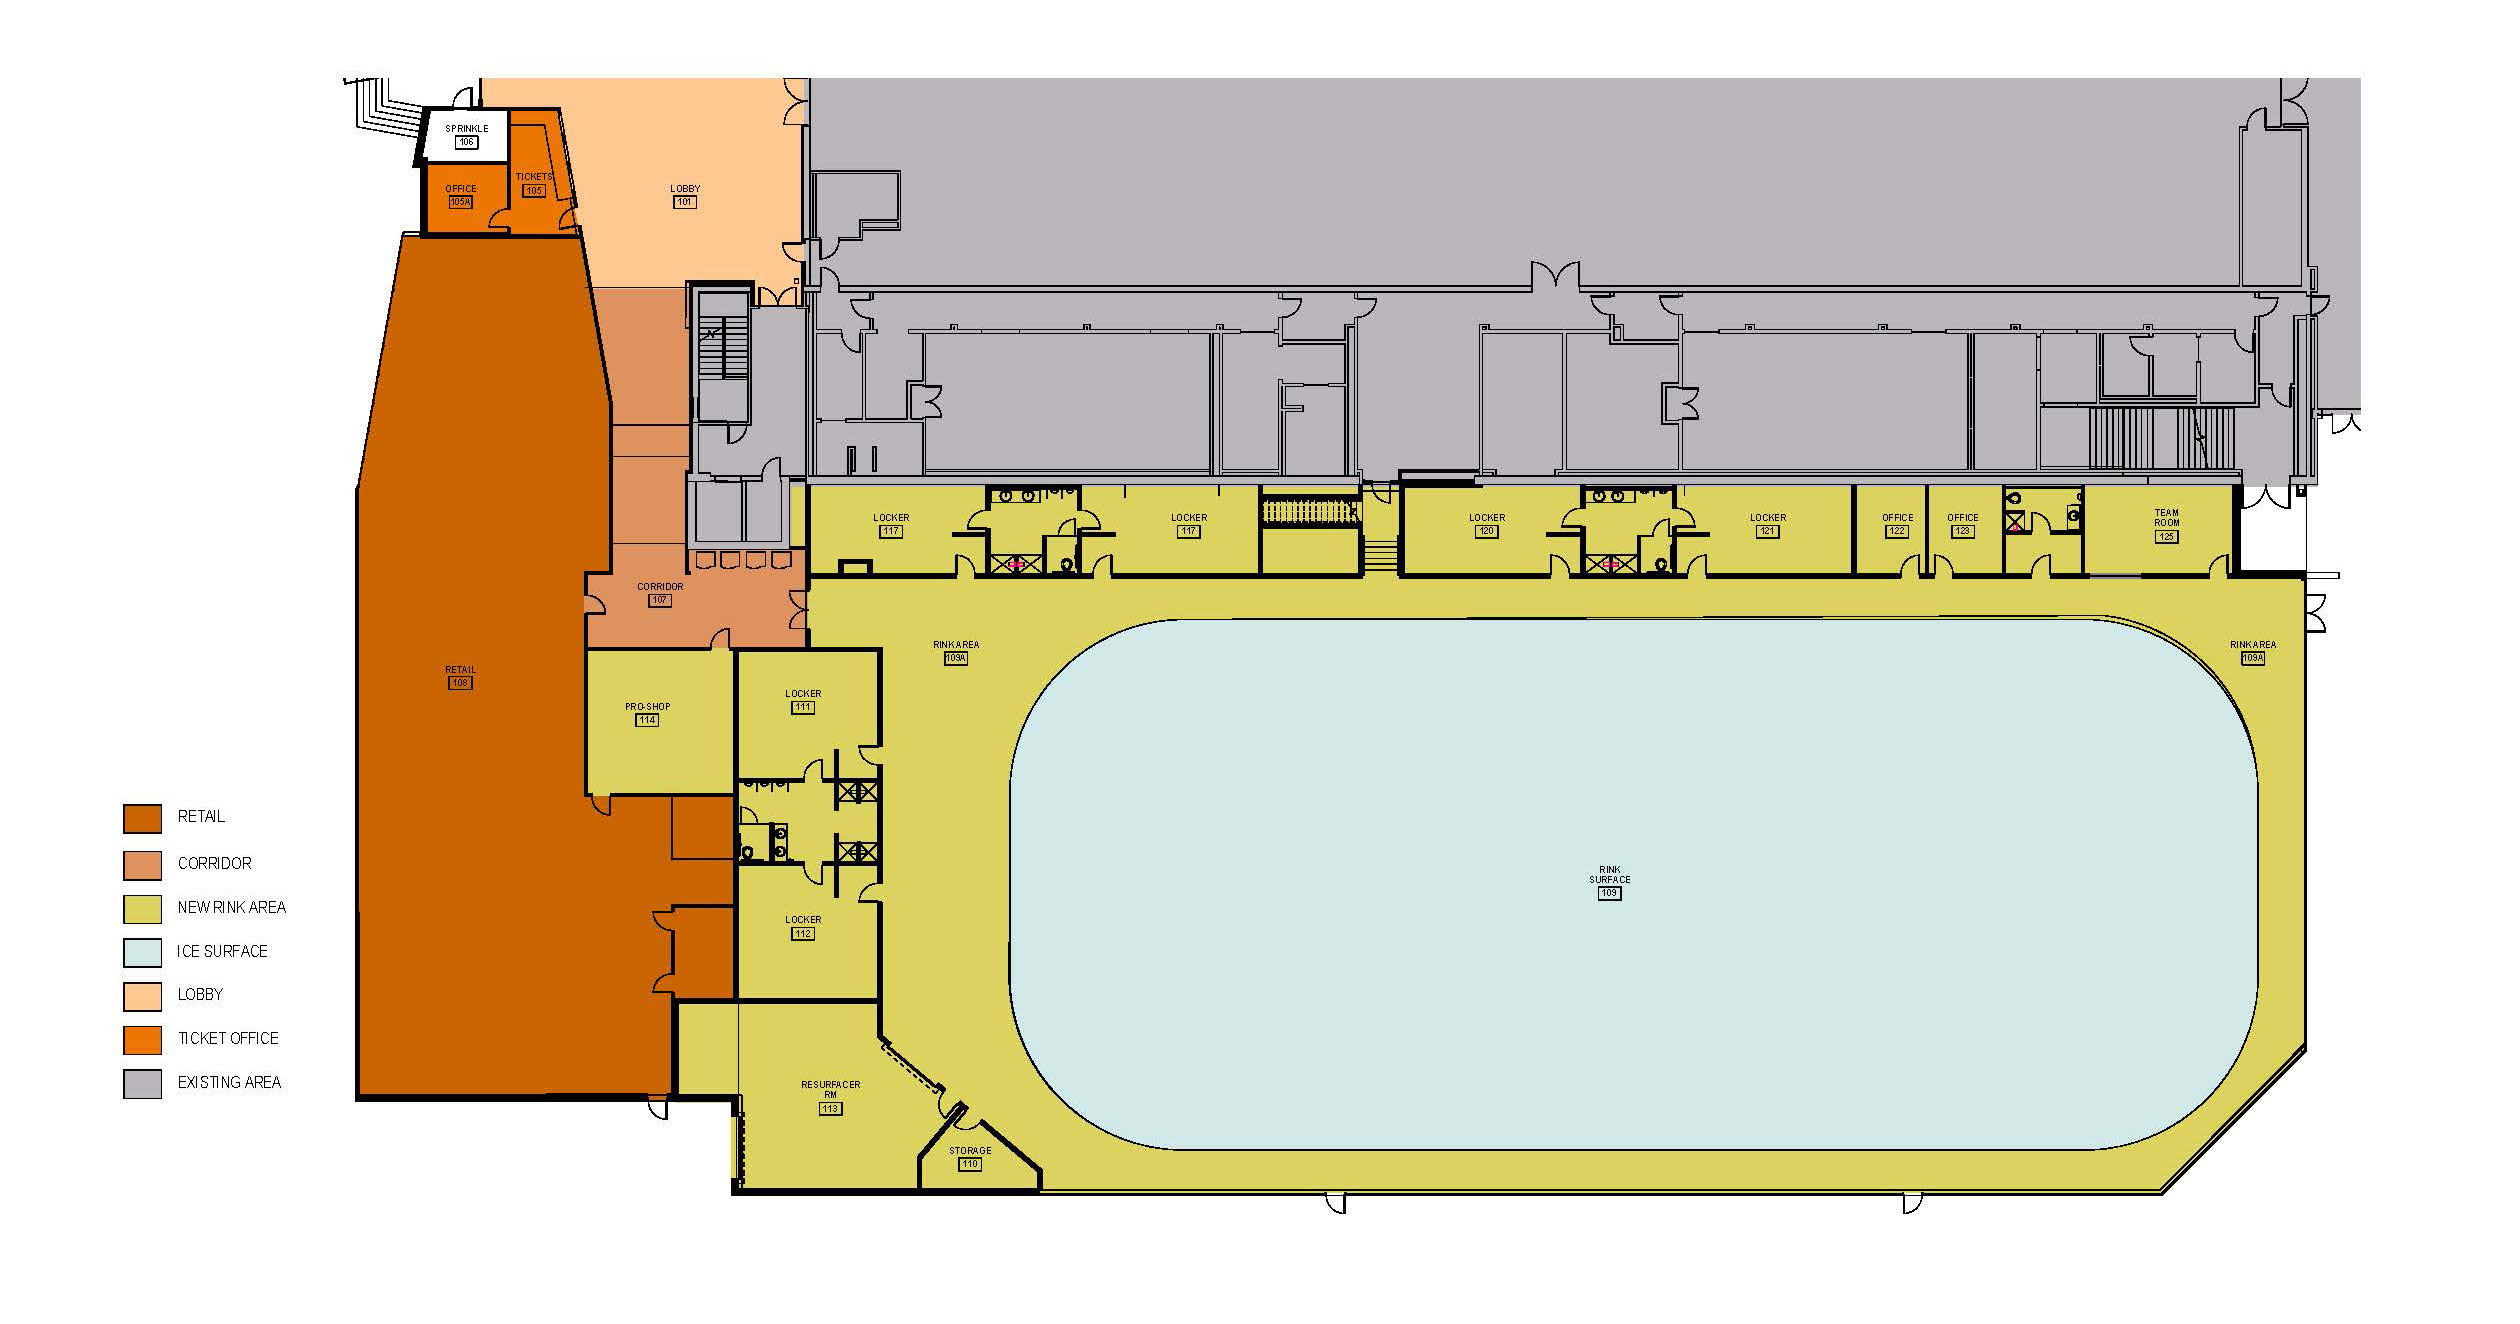 Floor Plan - Second Ice Rink and New Entry